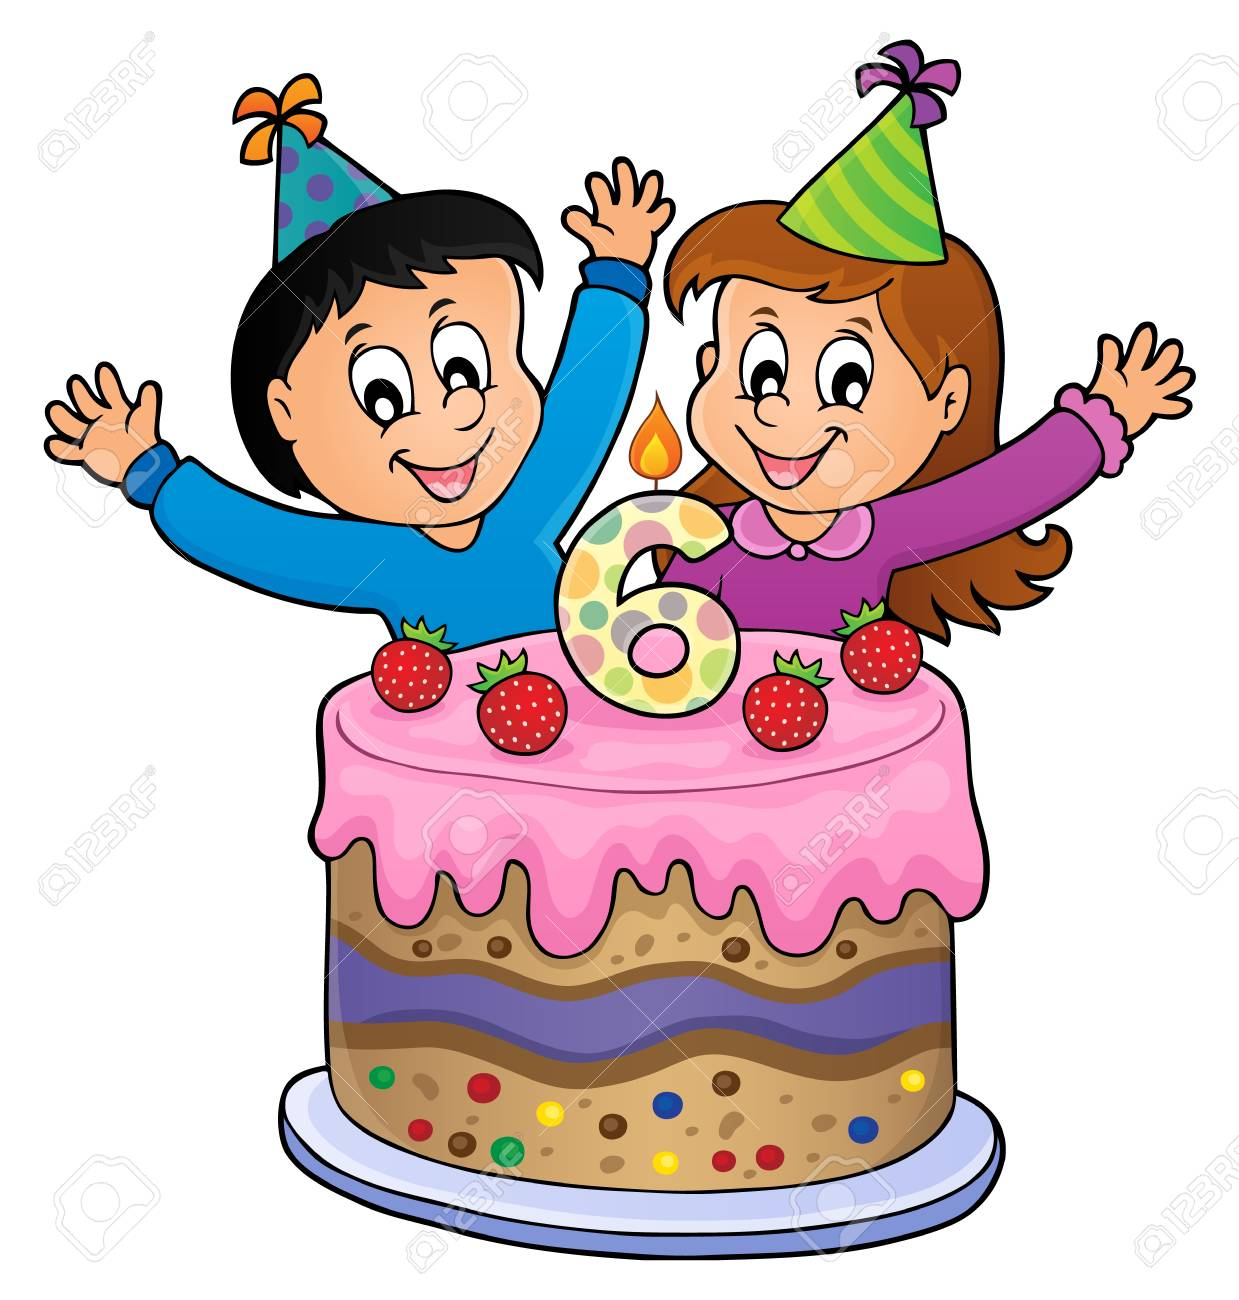 Two Kids Waving Hands In Behind A Birthday Cake With Number 6